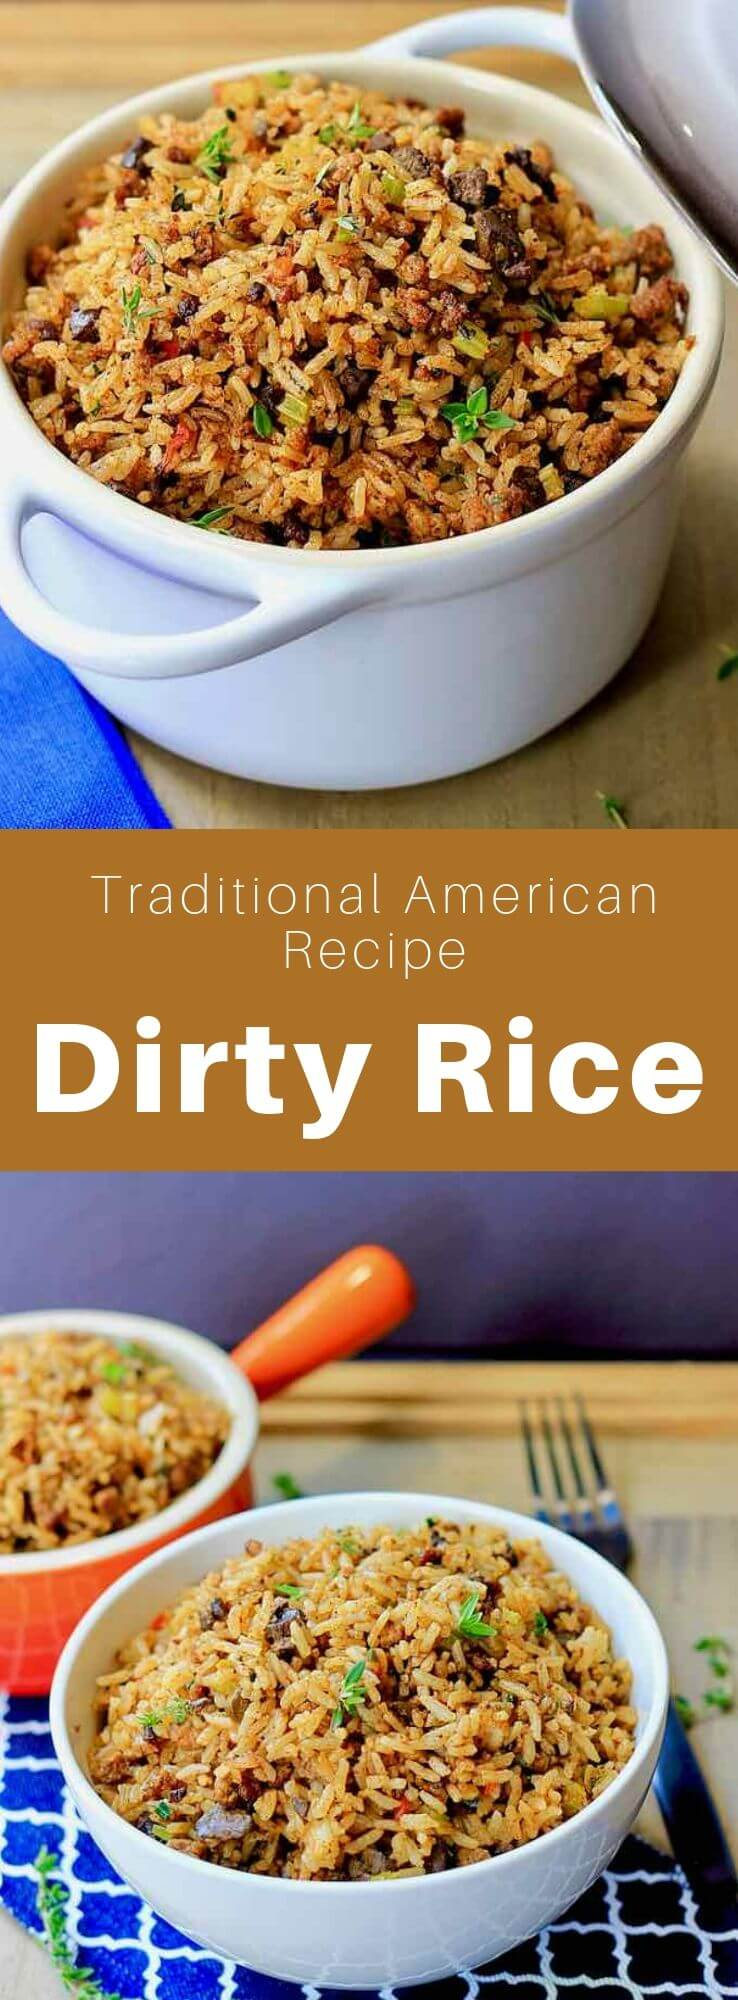 Dirty rice is a popular Creole dish in southern Louisiana that is prepared with rice, chopped beef and pork and chicken liver. #SouthernFood #SouthernRecipe #SouthernCuisine #AmericanRecipe #AmericanFood #AmericanCuisine #WorldCuisine #196flavors